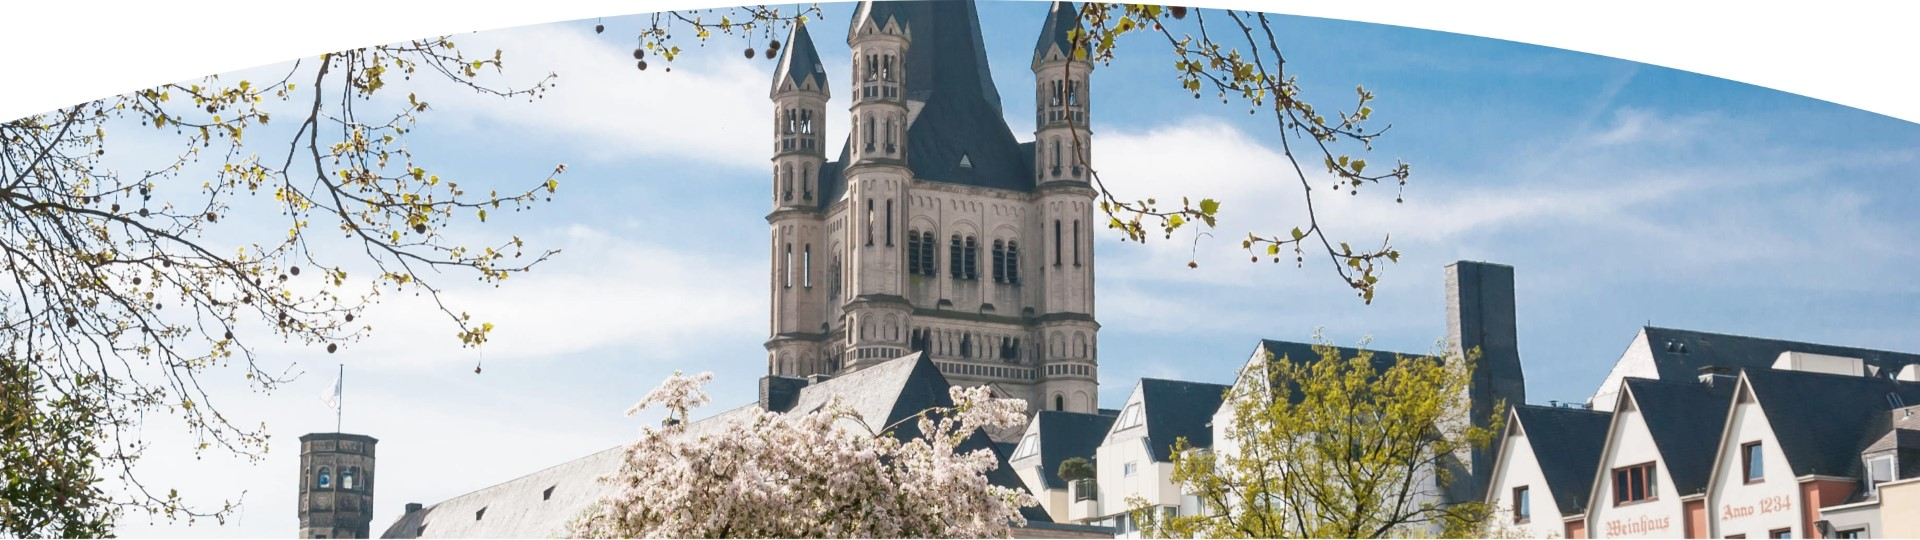 Cathedral of Cologne seen from a street in spring